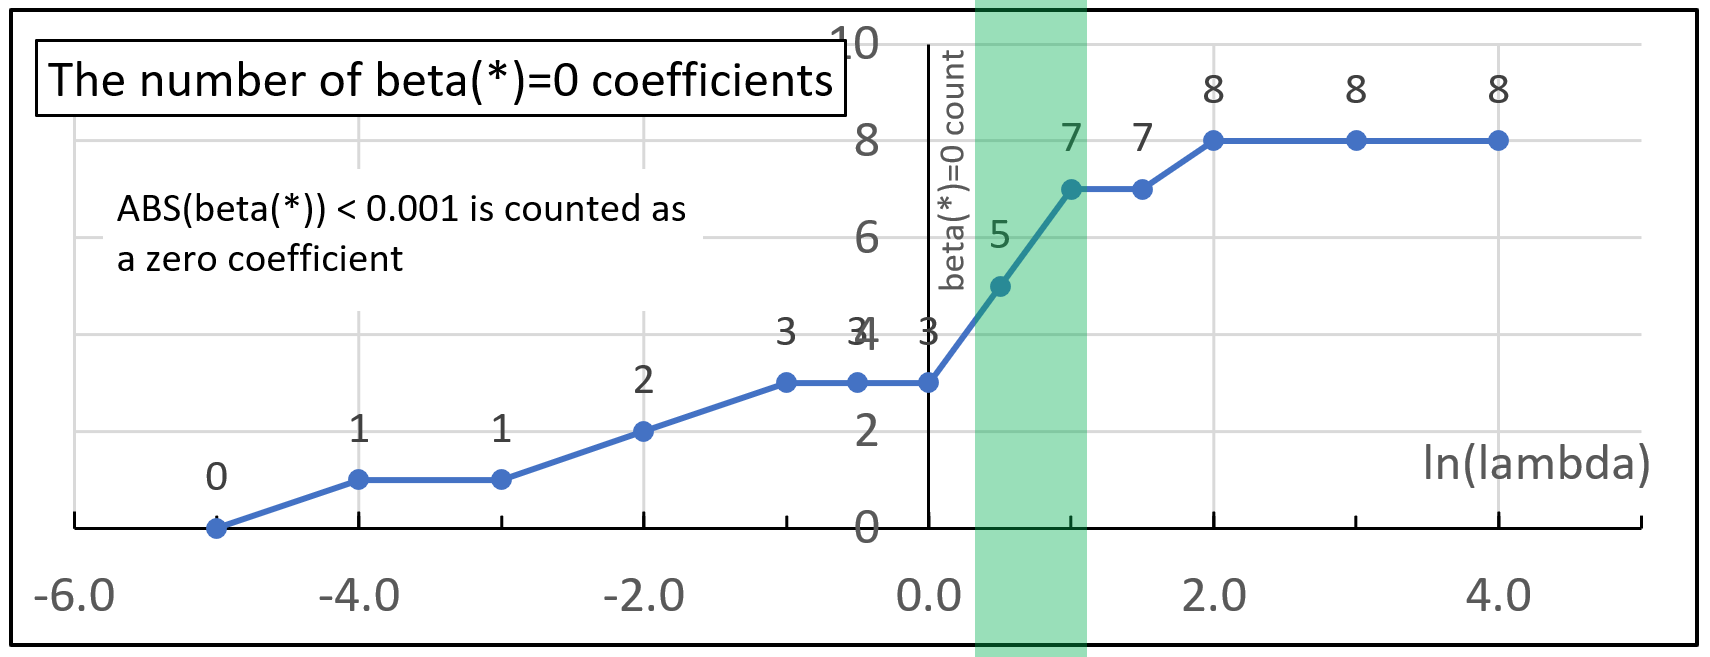 A graph showing how the number of explanatory variables equaling zero increases as the value of ln(lambda) also increases.